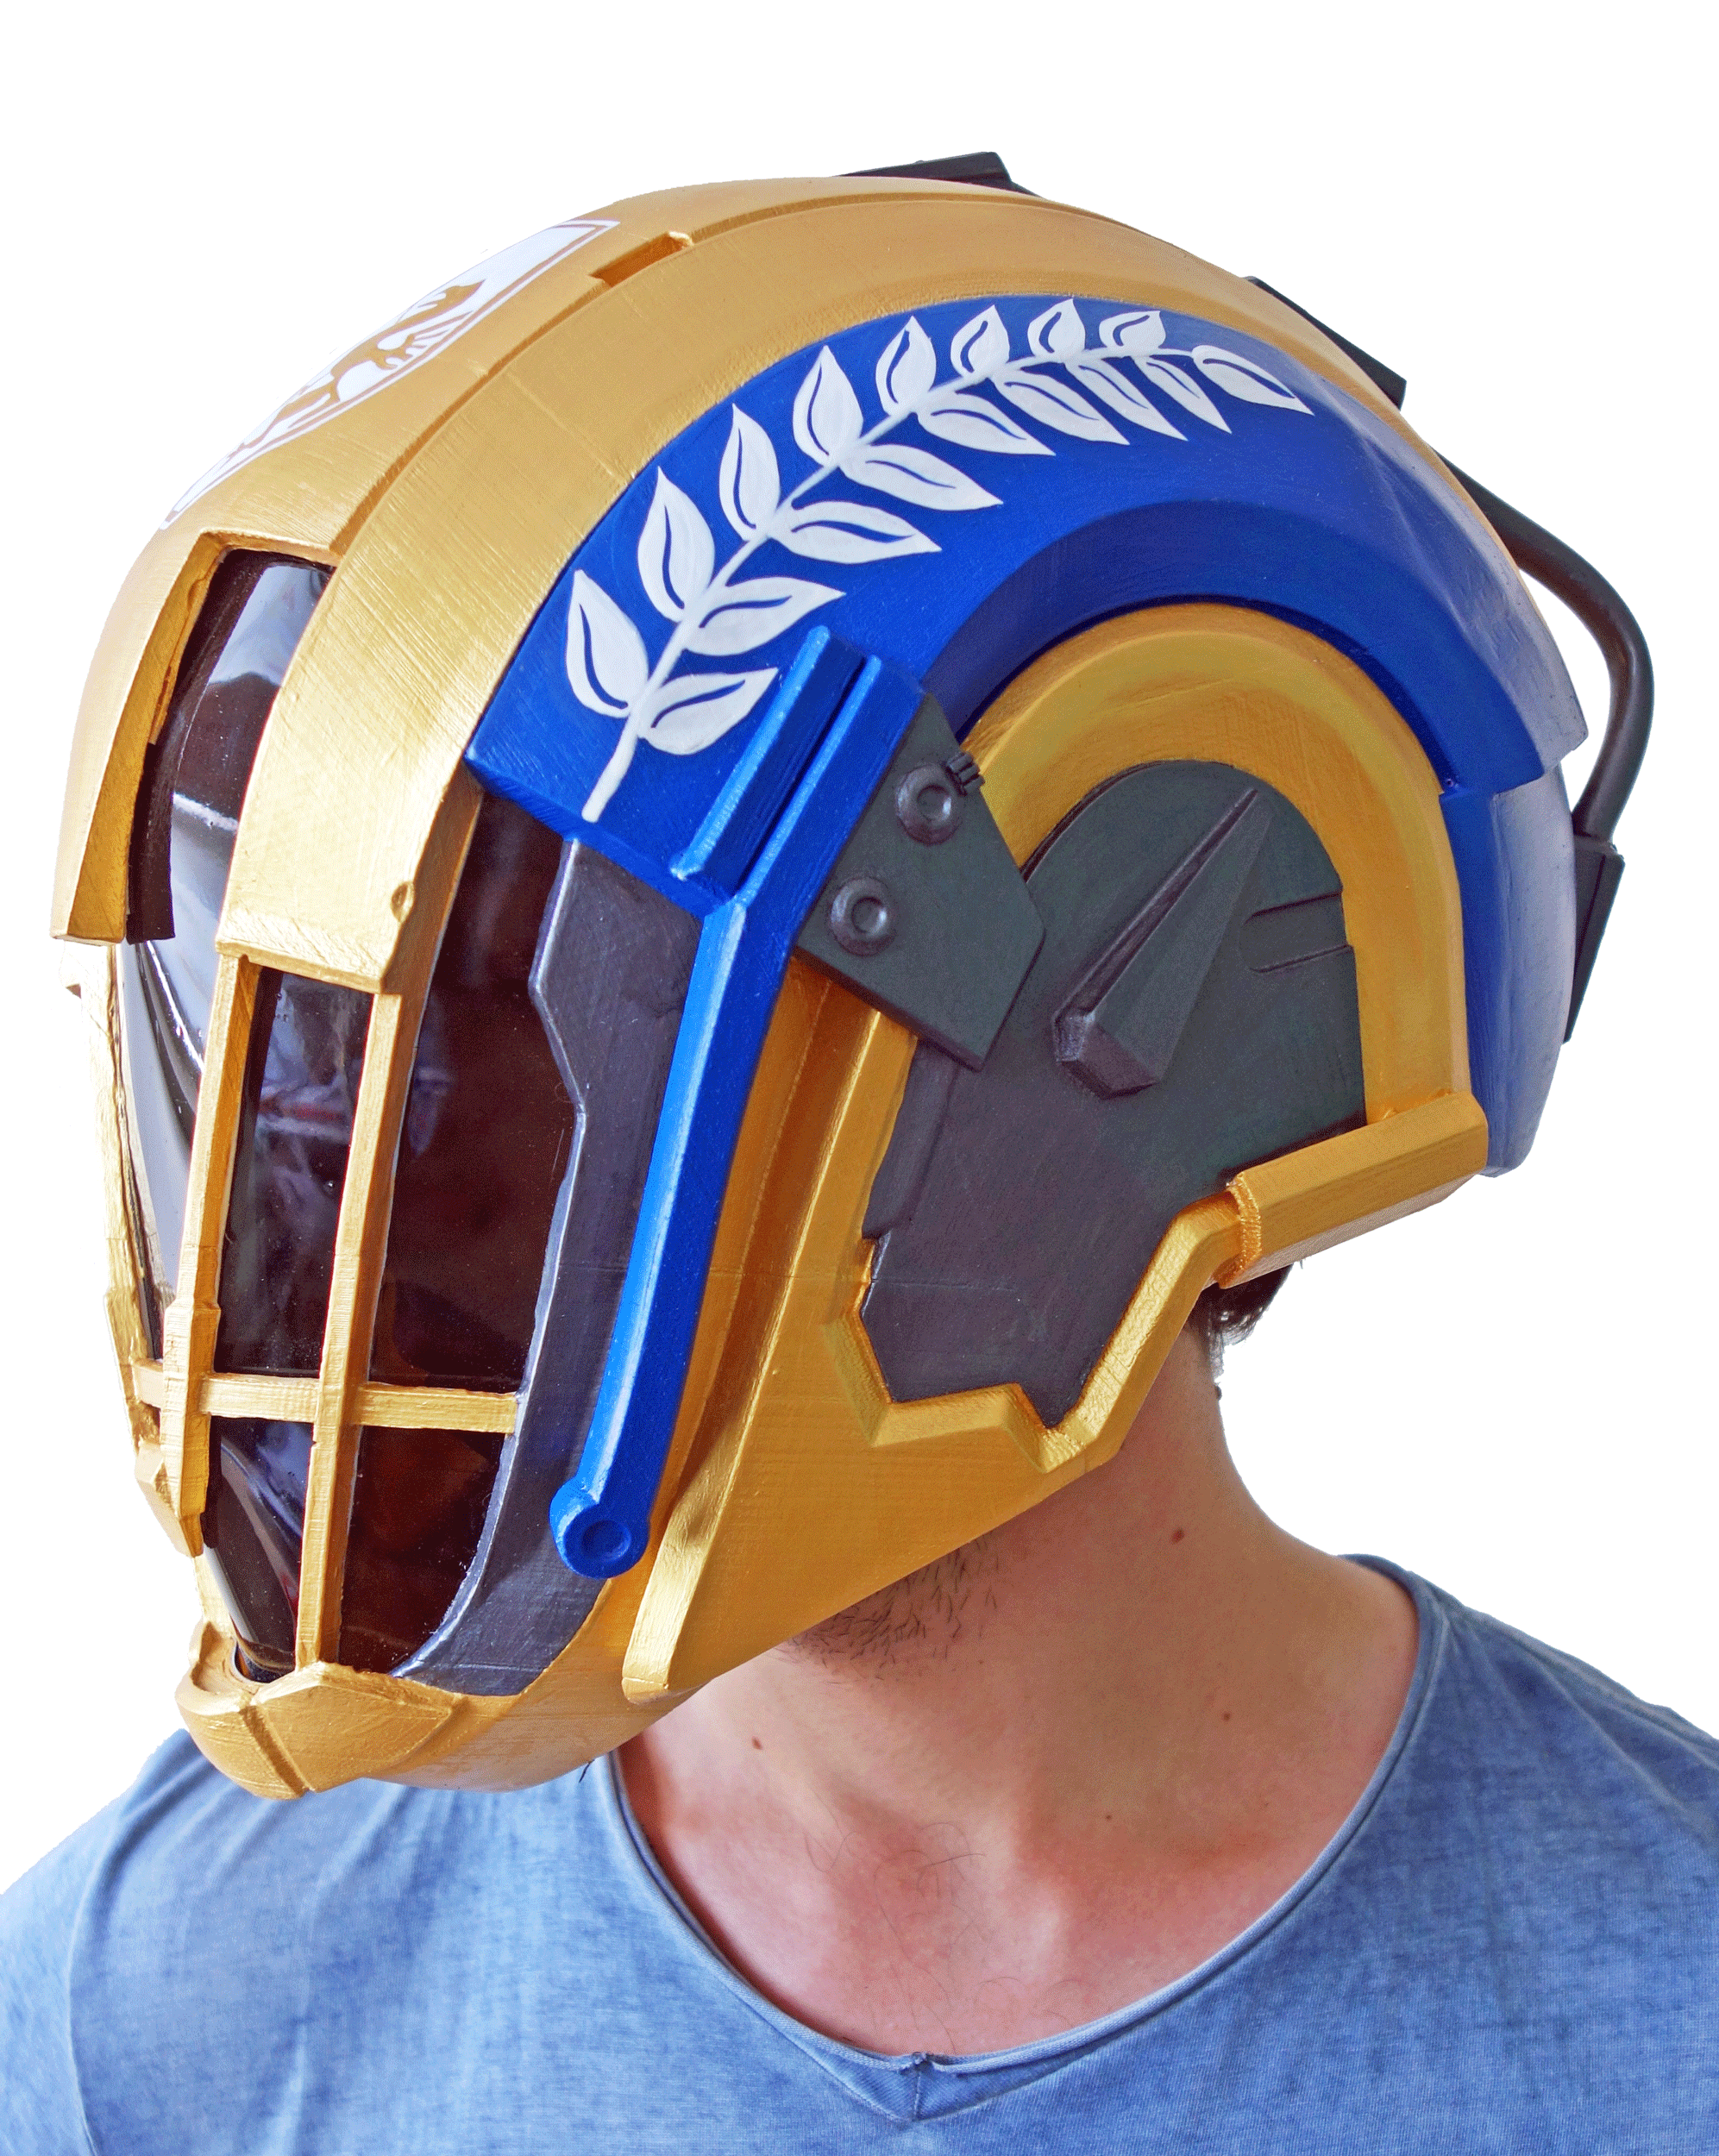 Destiny helmets for sale